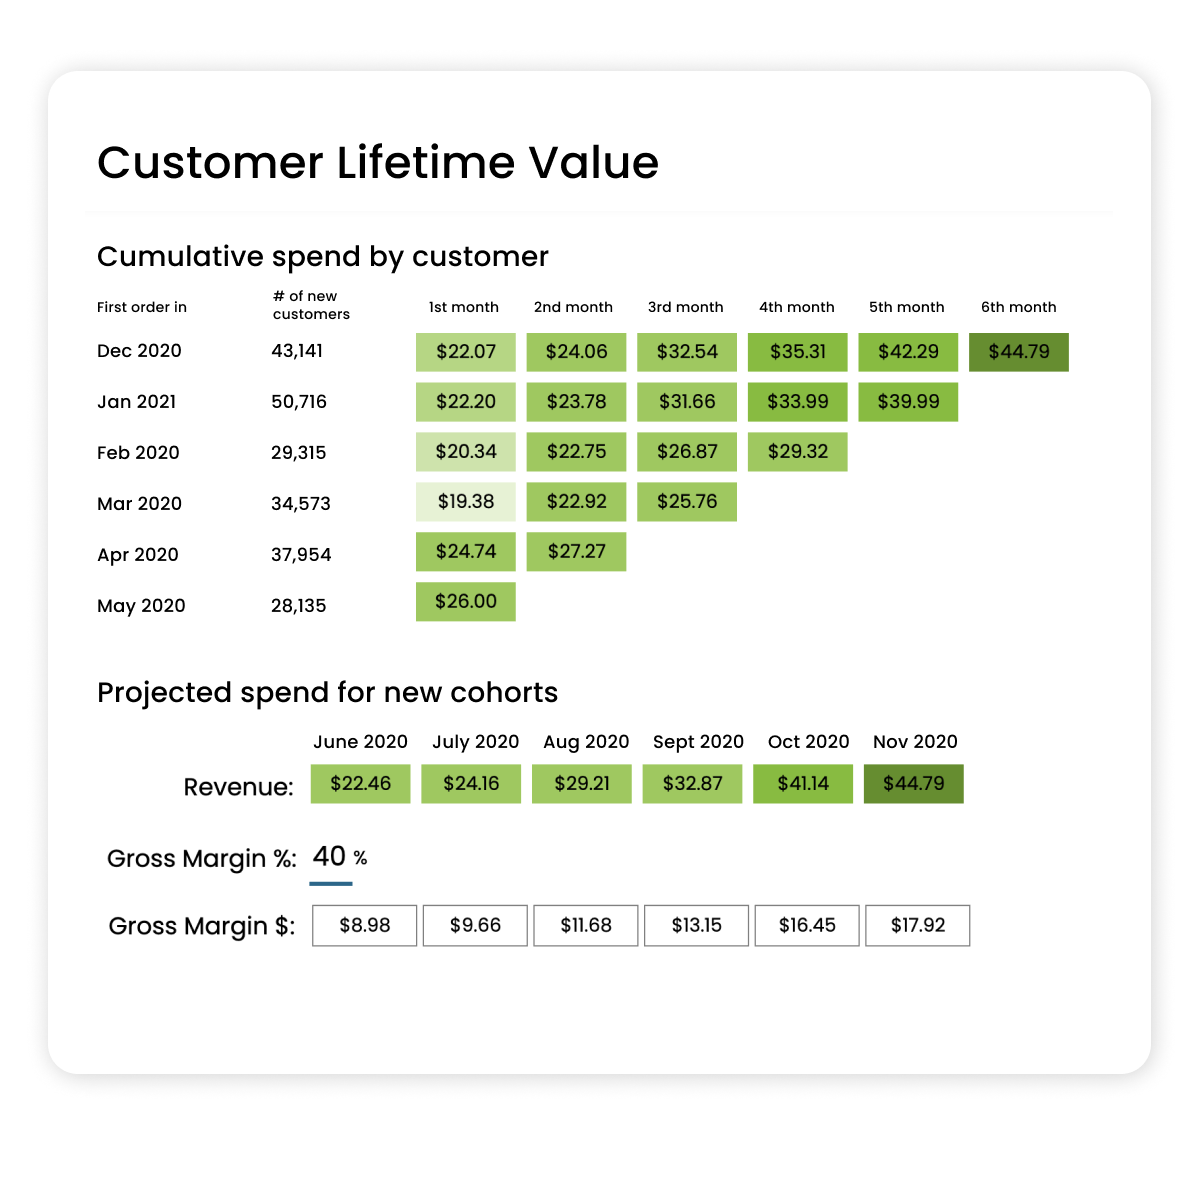 customer lifetime value chart displaying cumulative spend and LTV over six months